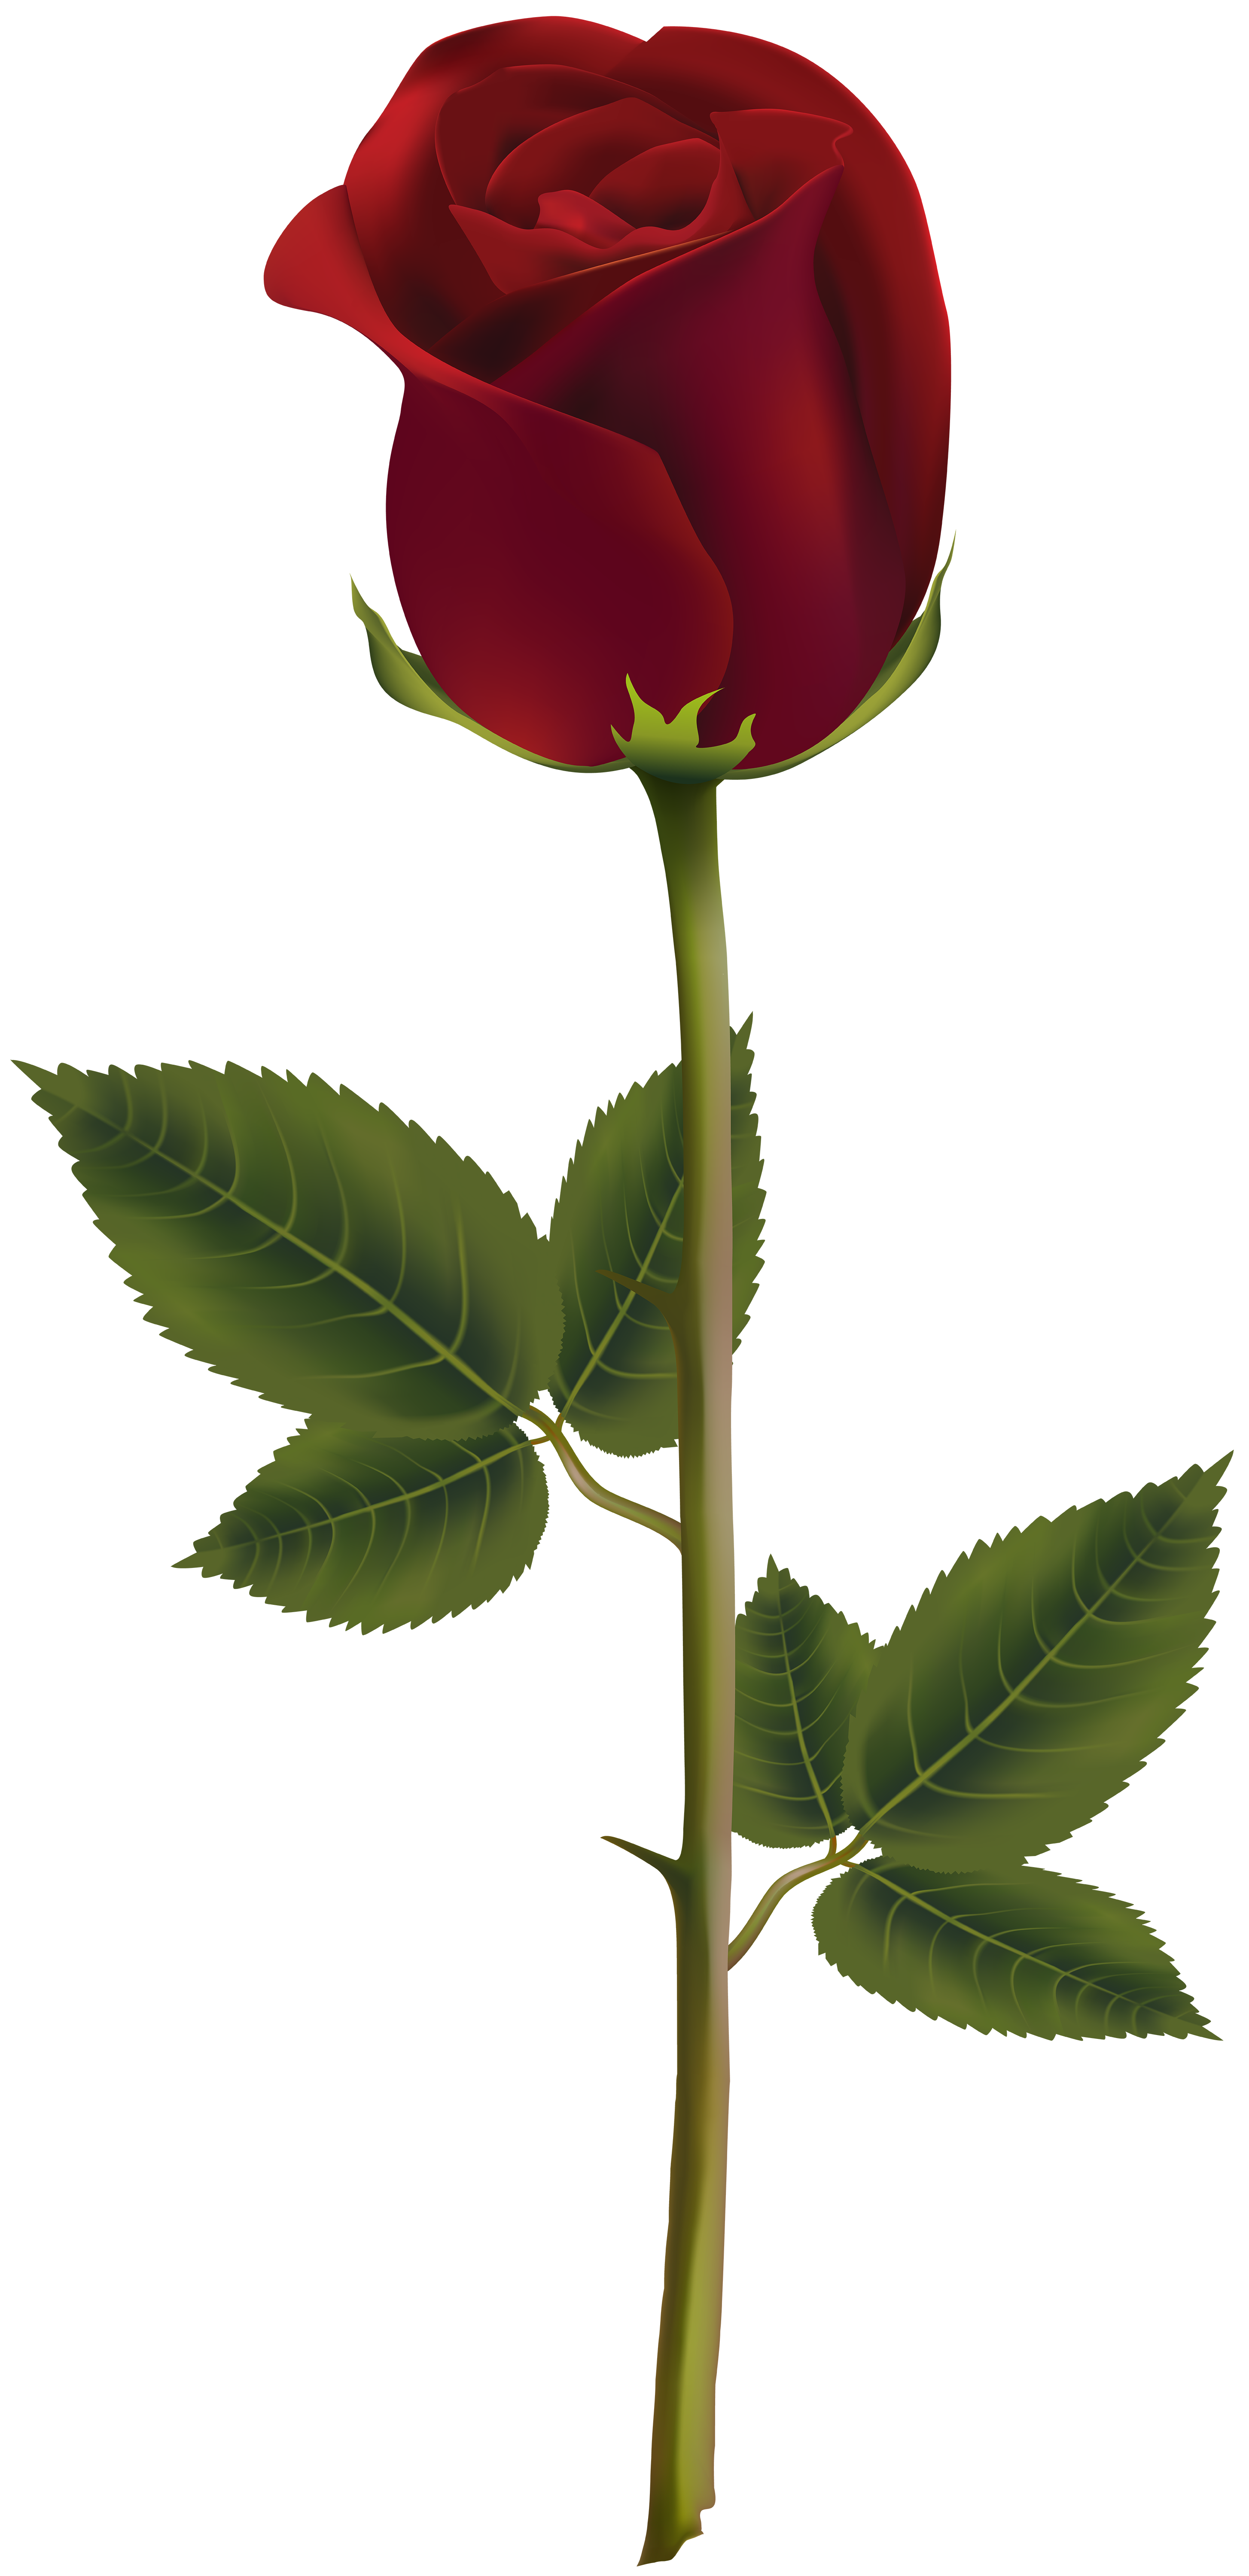 Red Rose Dark Transparent PNG Image Flower png images